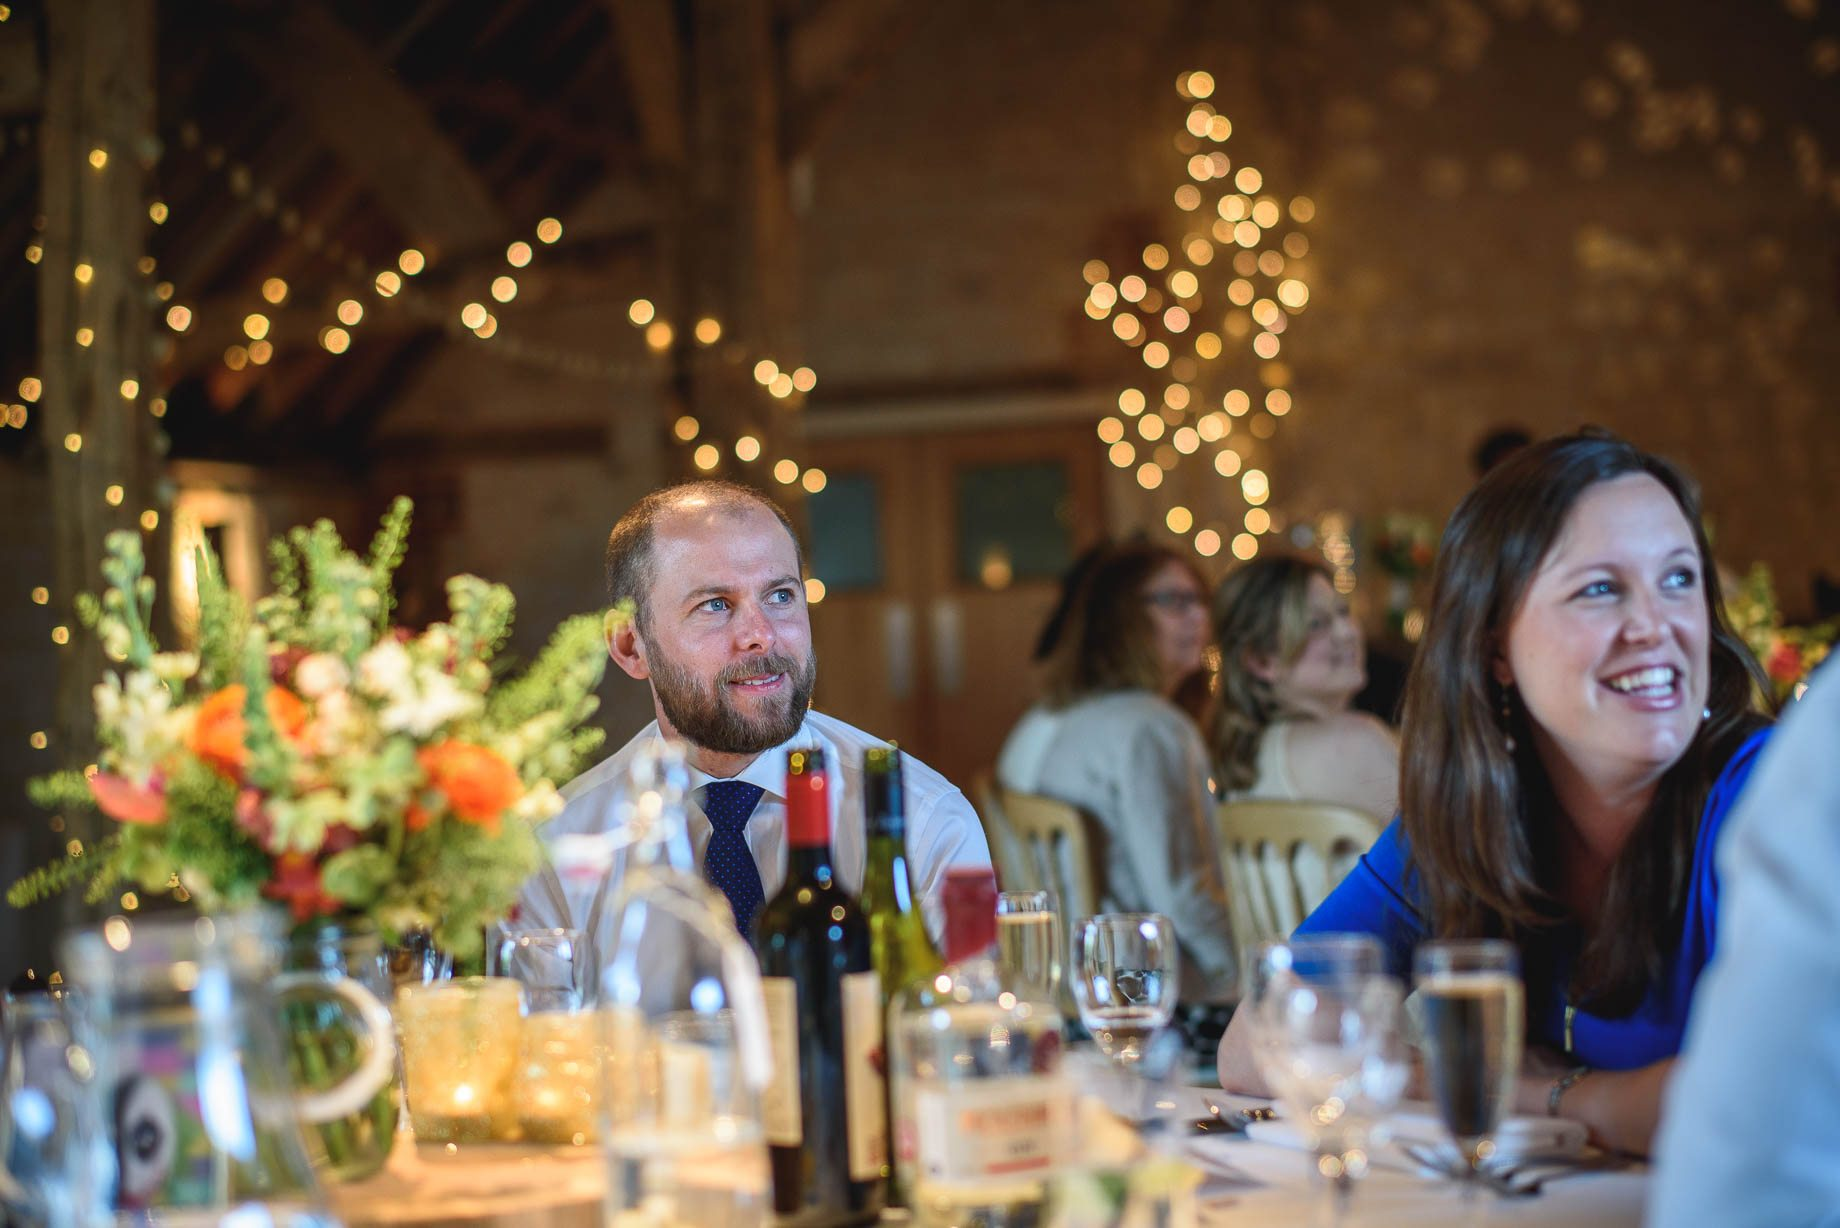 Bury Court Barn wedding photography by Guy Collier - Jo and Jamie (113 of 160)